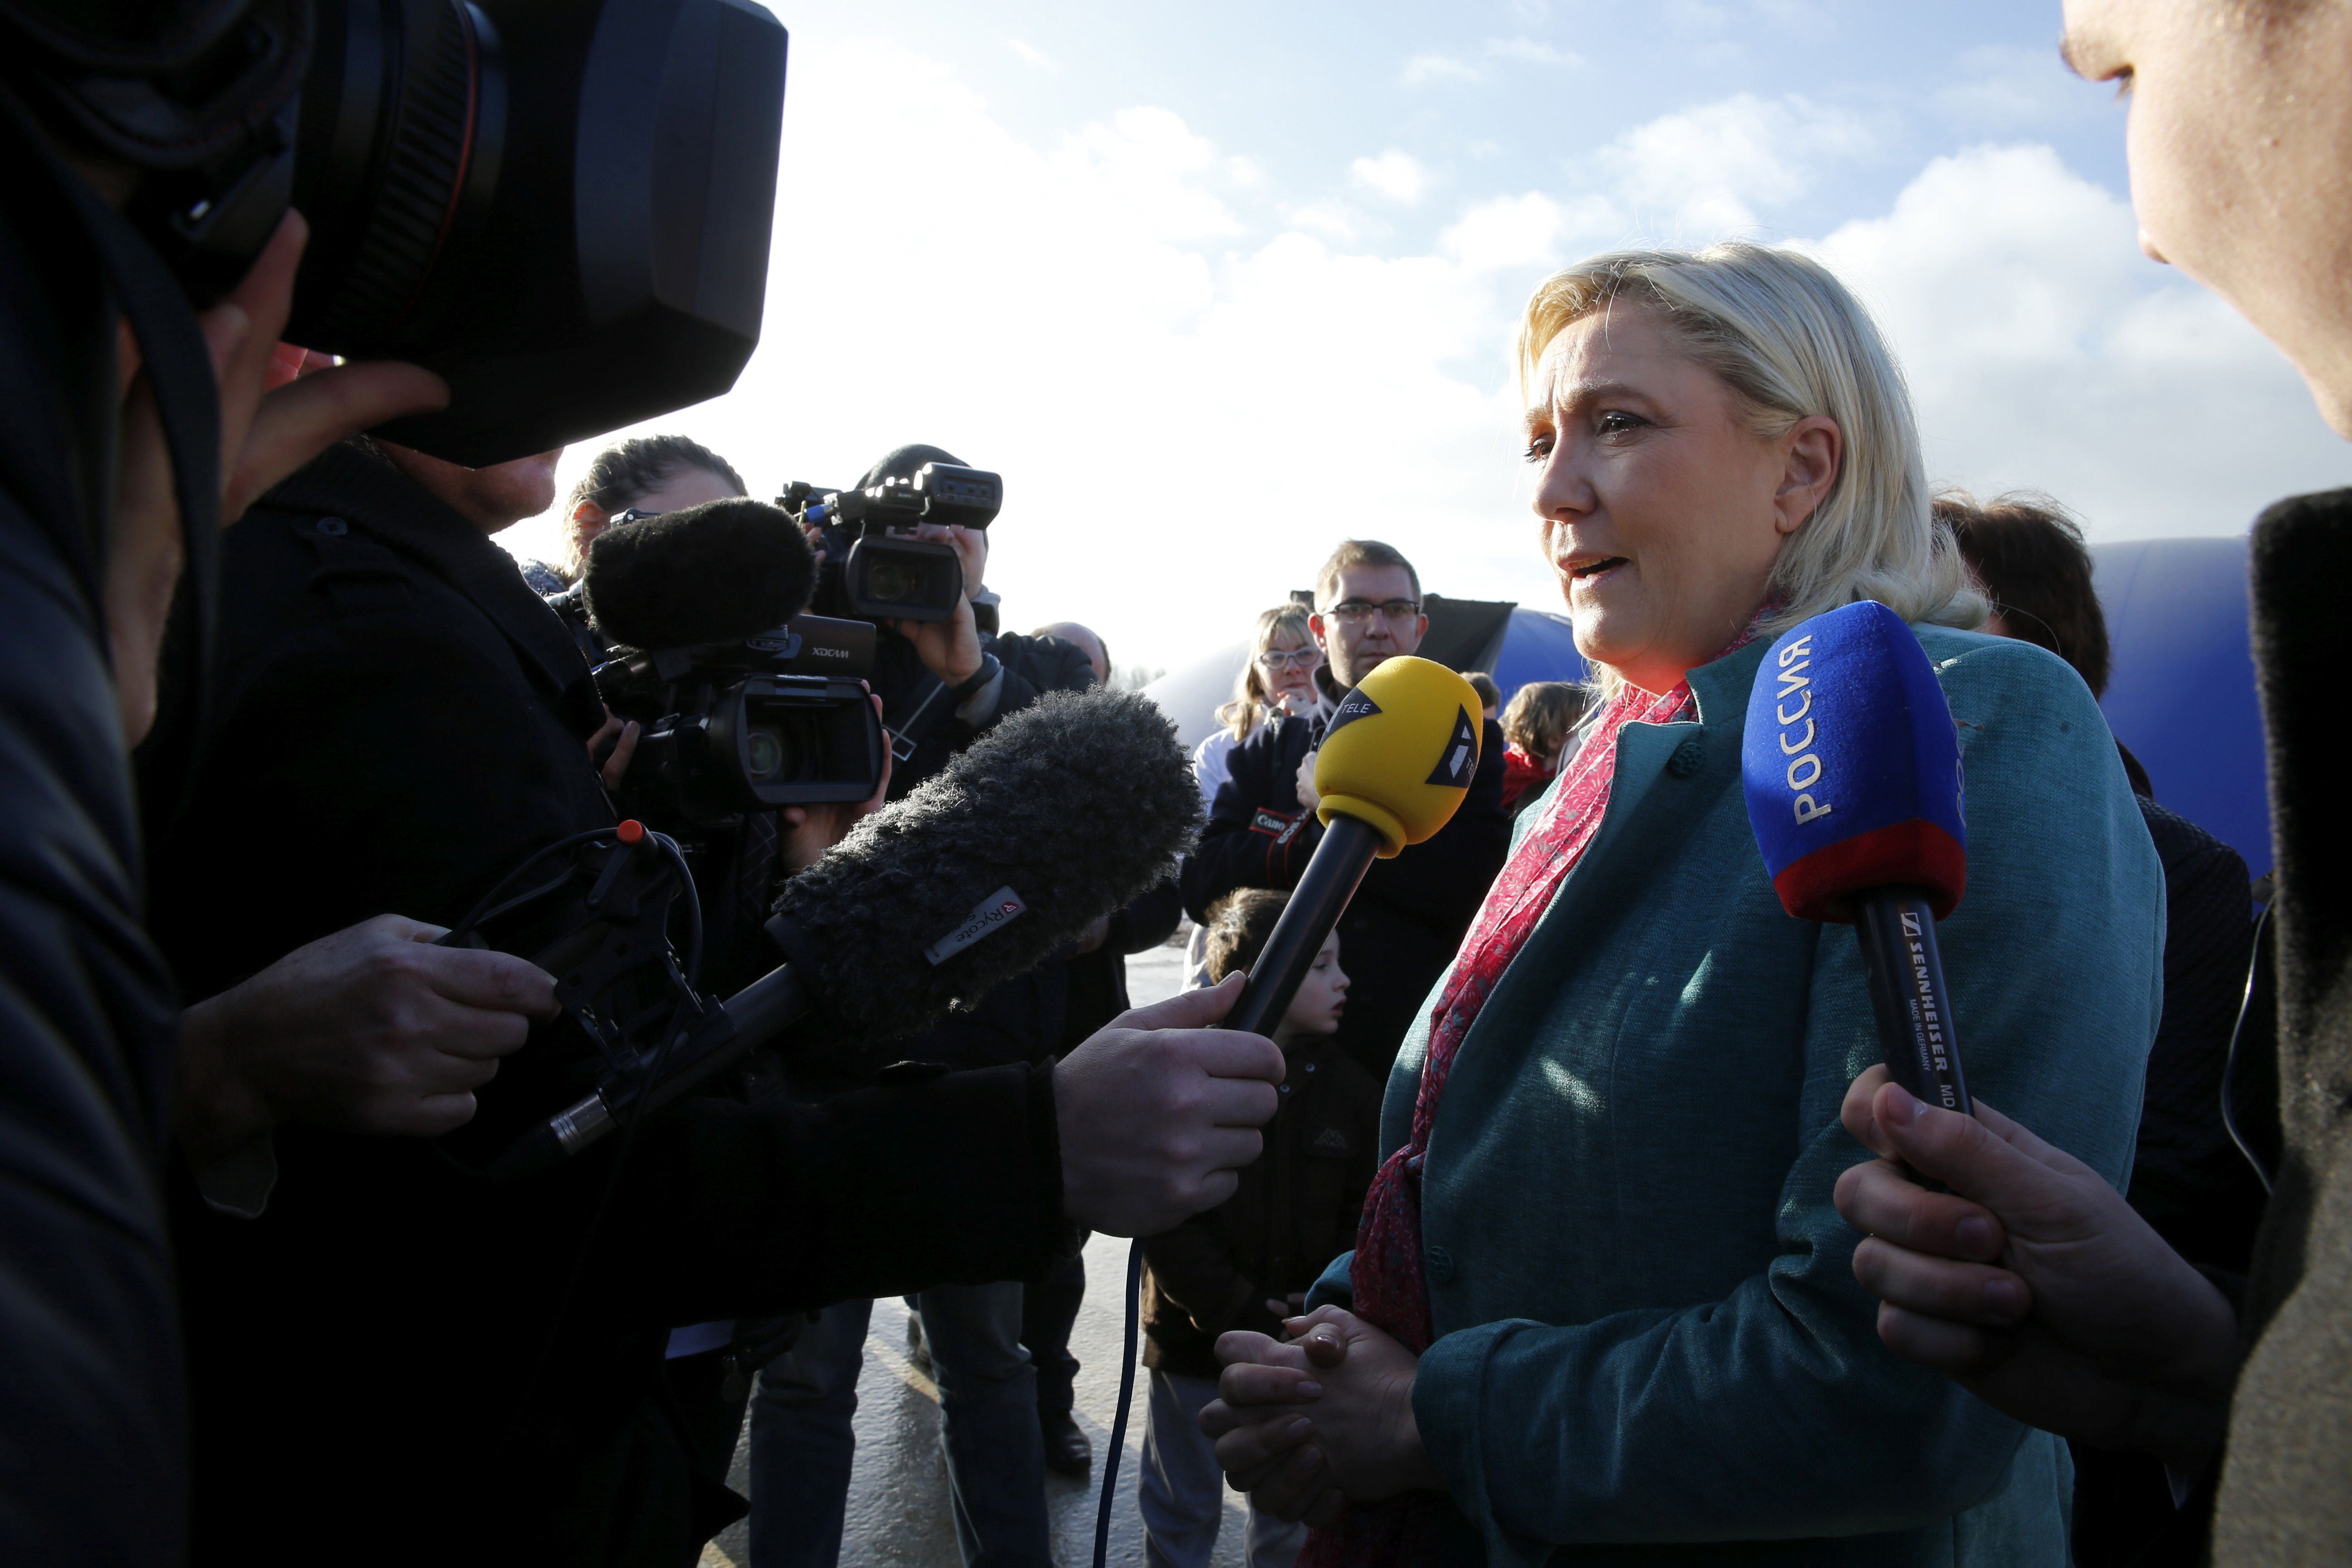 Marine Le Pen, French National Front political party leader and candidate for the National Front in the Nord-Pas-de-Calais-Picardie region, is surrounded by media as she campaigns for the upcoming regional elections